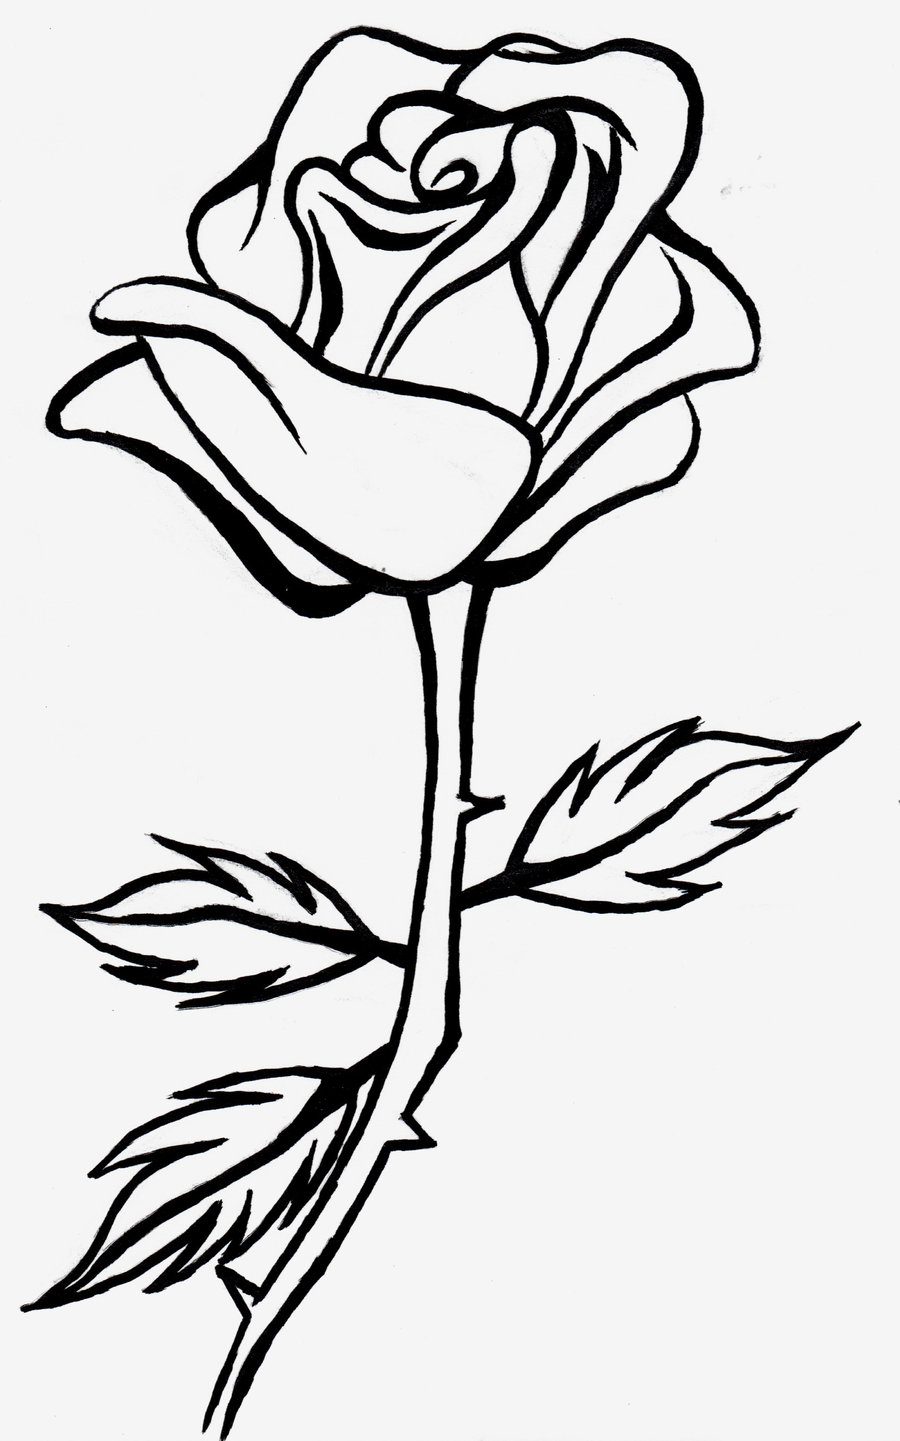 Rose black and white free ros - Rose Clipart Black And White